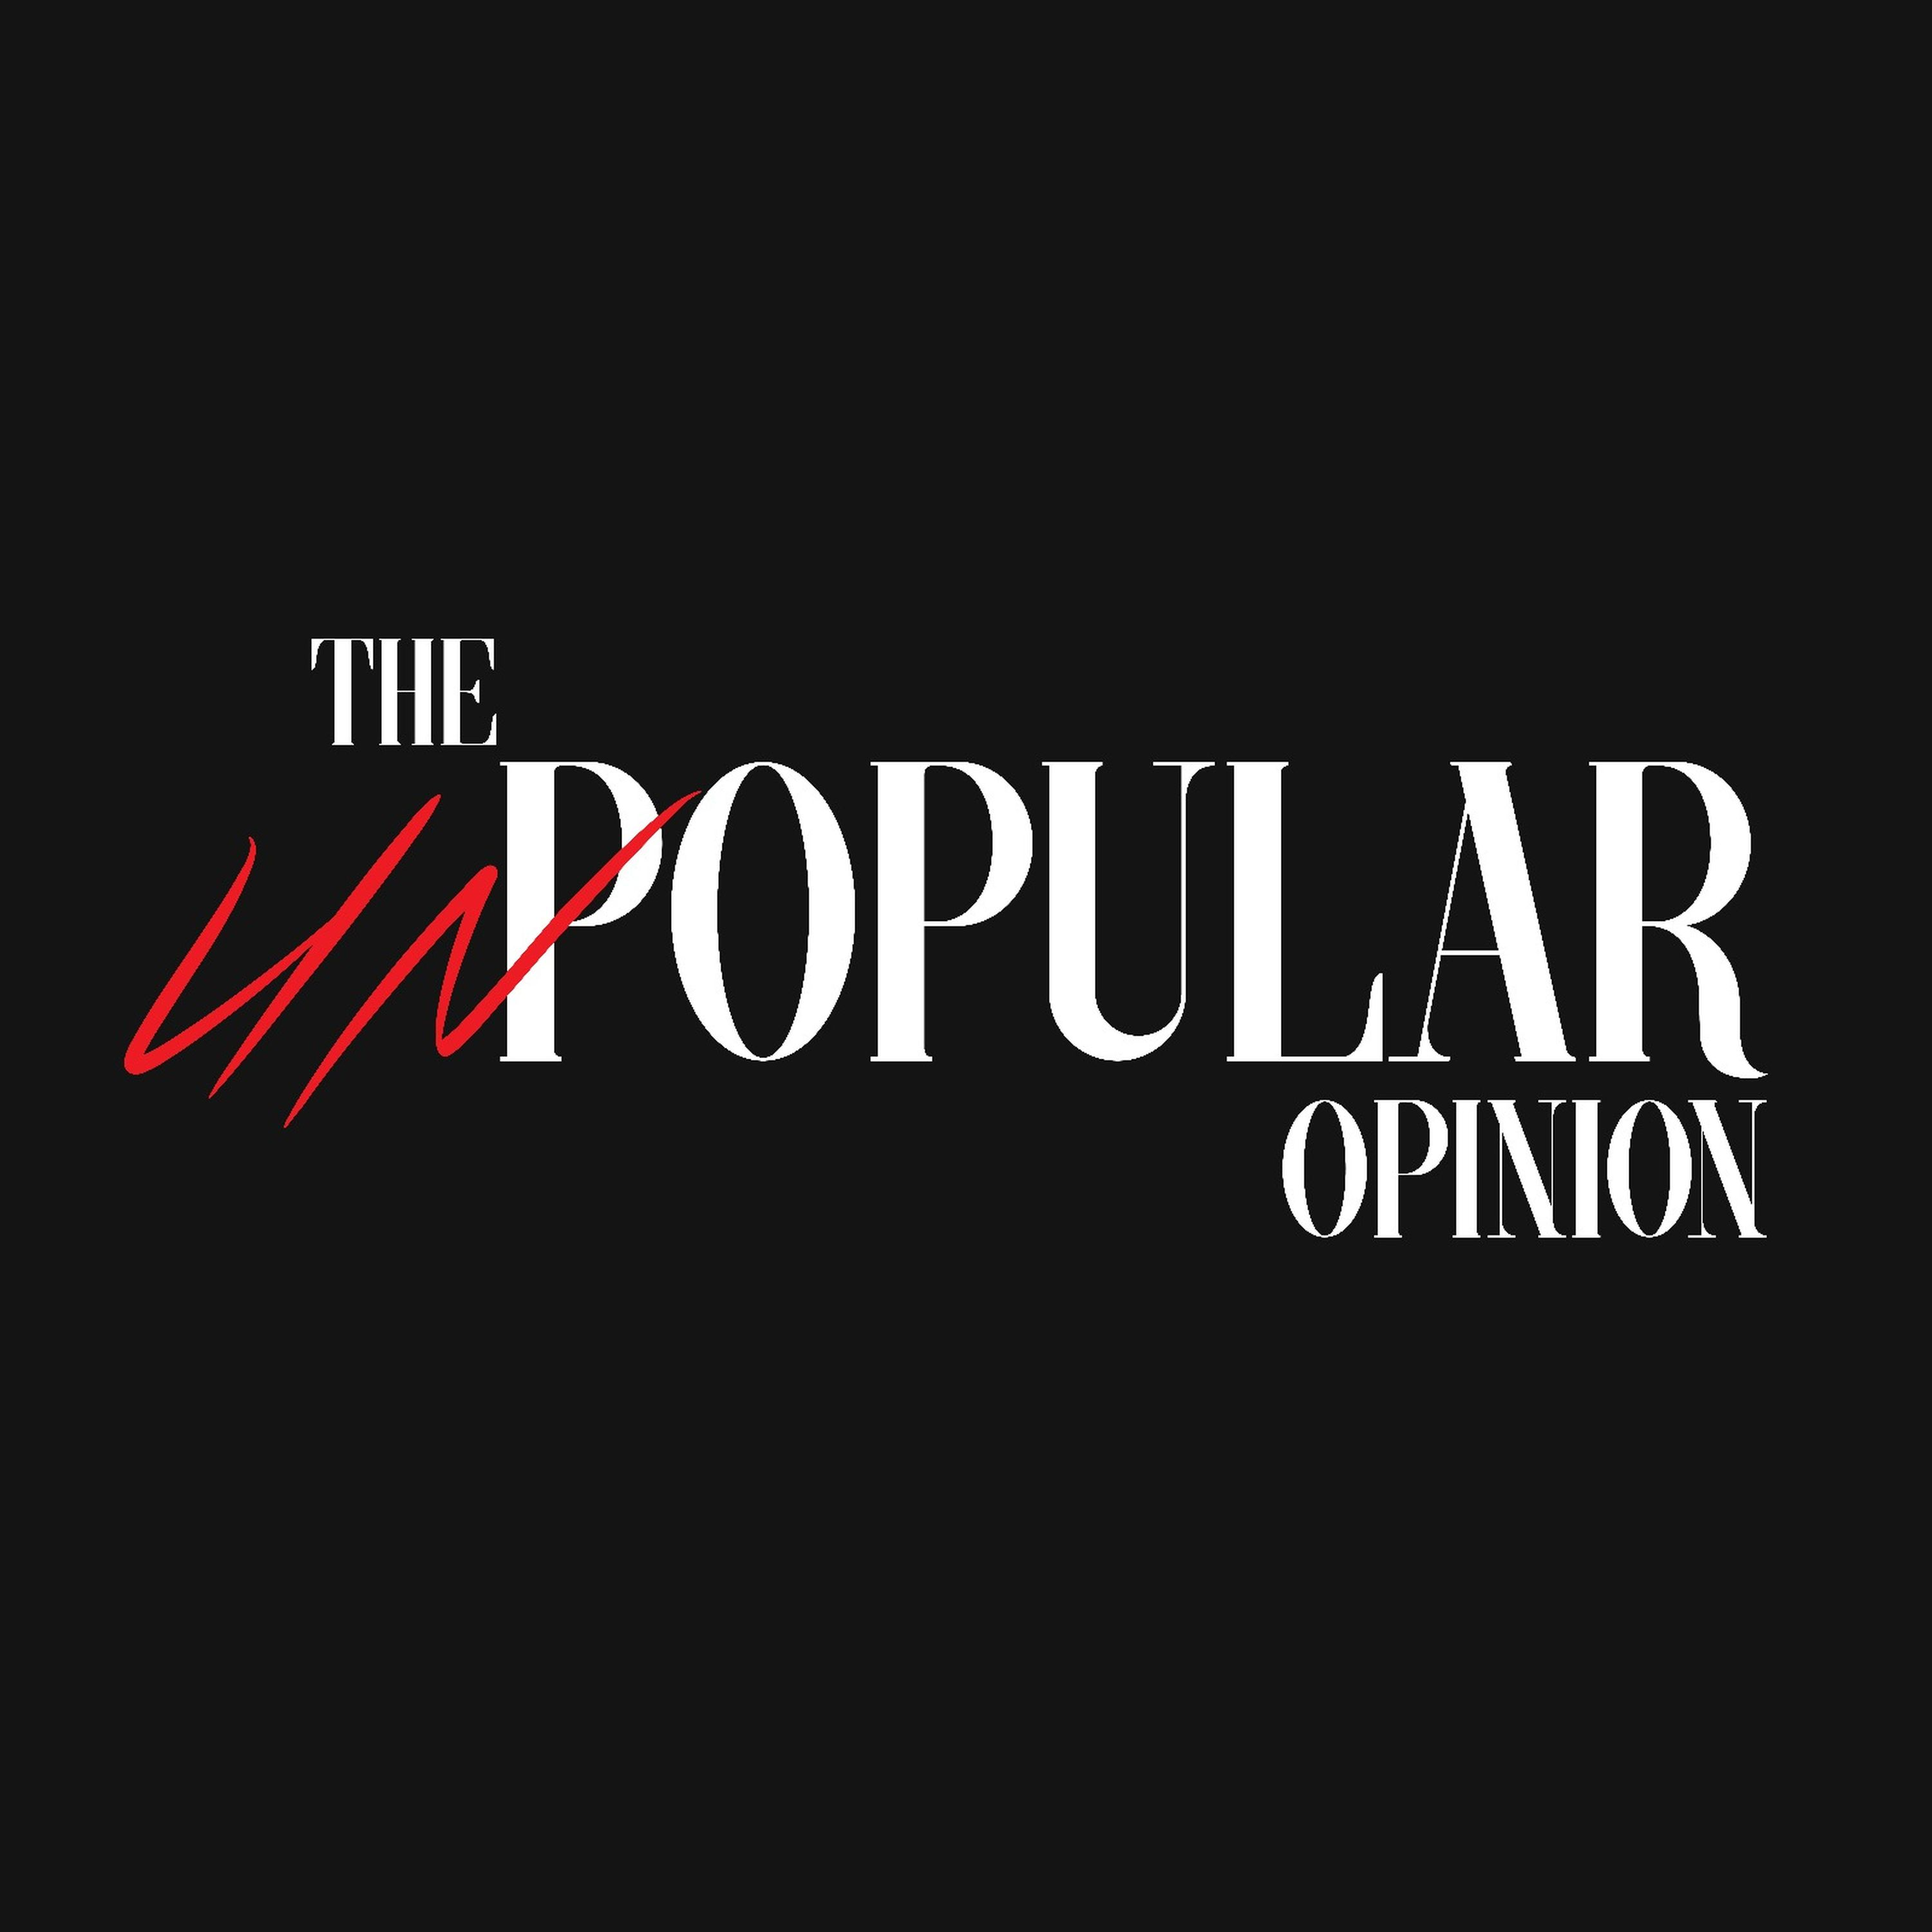 The Unpopular Opinion on Irrational Fears